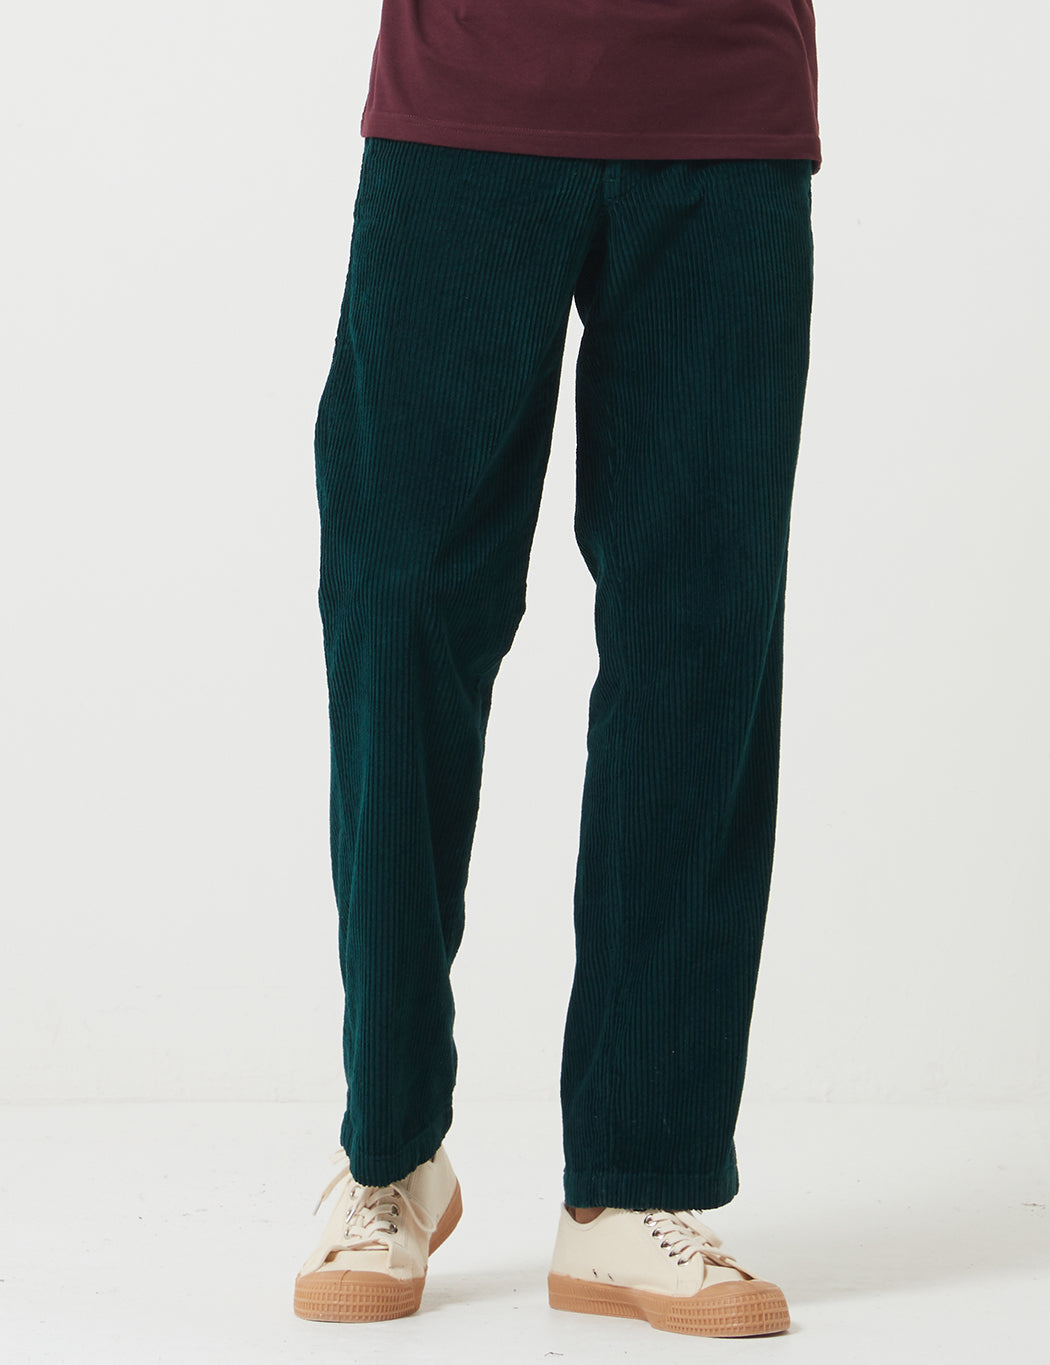 Dickies Cloverport Cord Pant (Cord) - Forest Green | URBAN EXCESS.